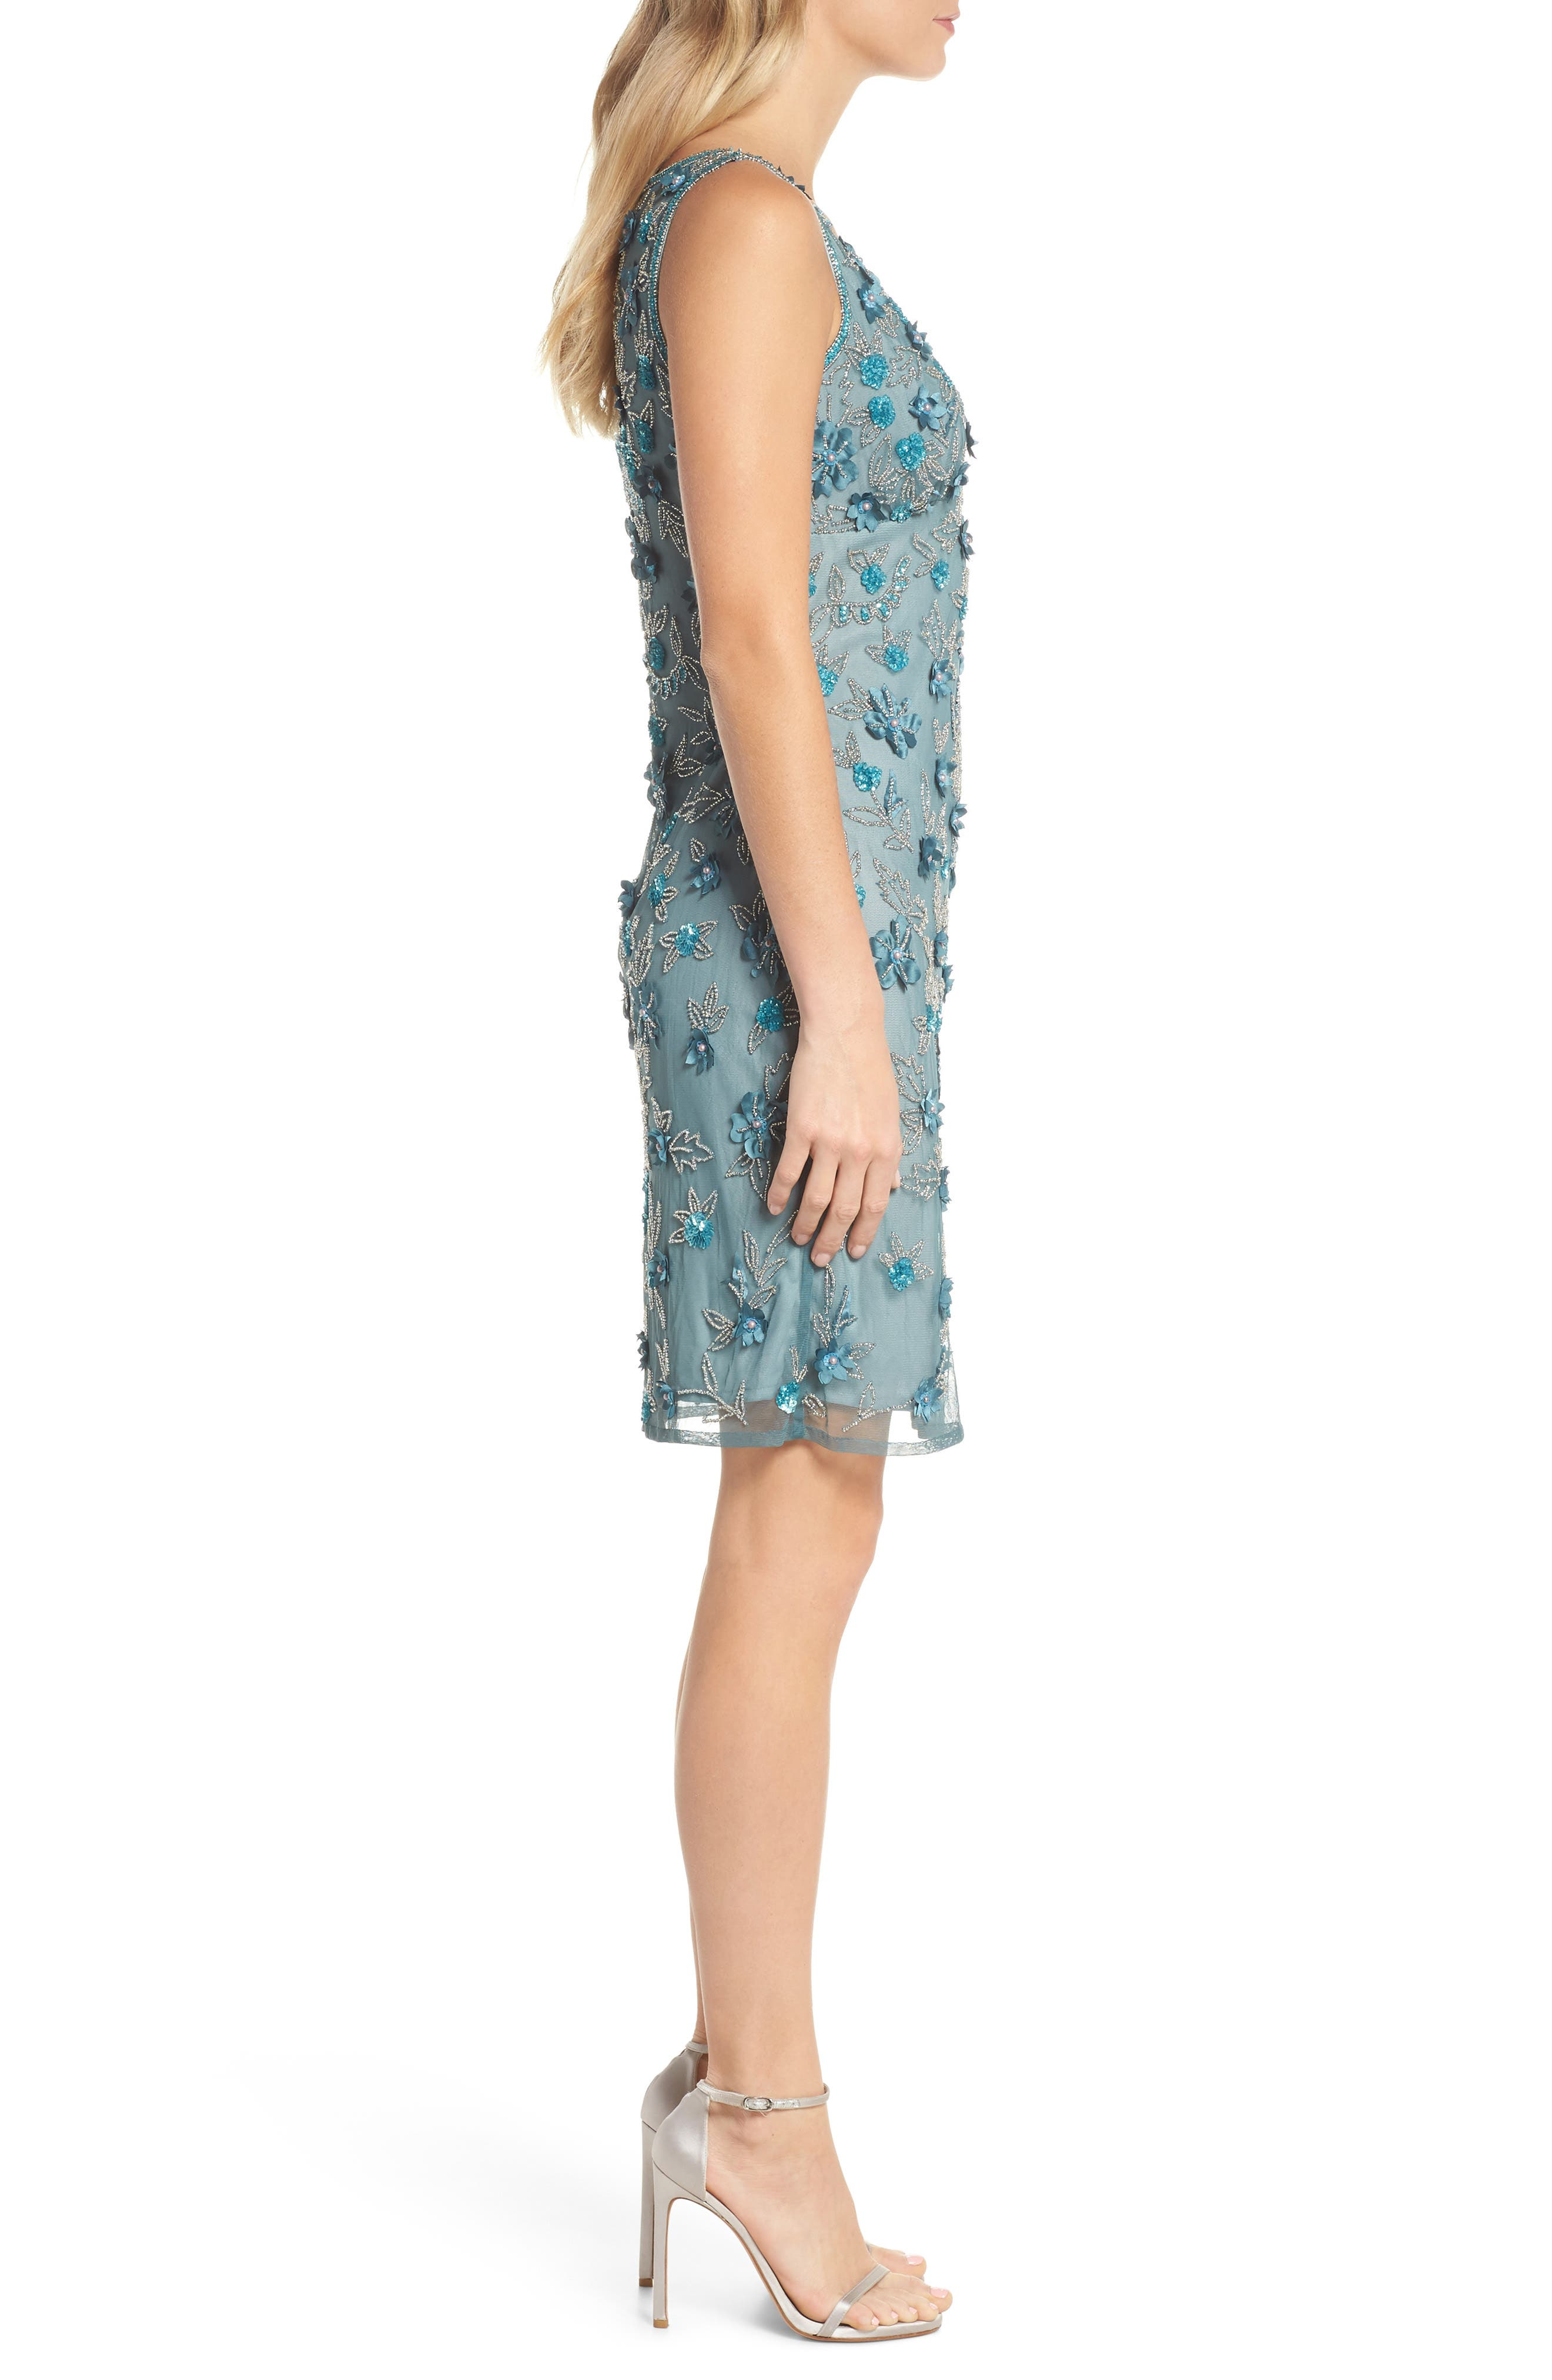 3D Floral Embellished Sheath Dress,                             Alternate thumbnail 3, color,                             400